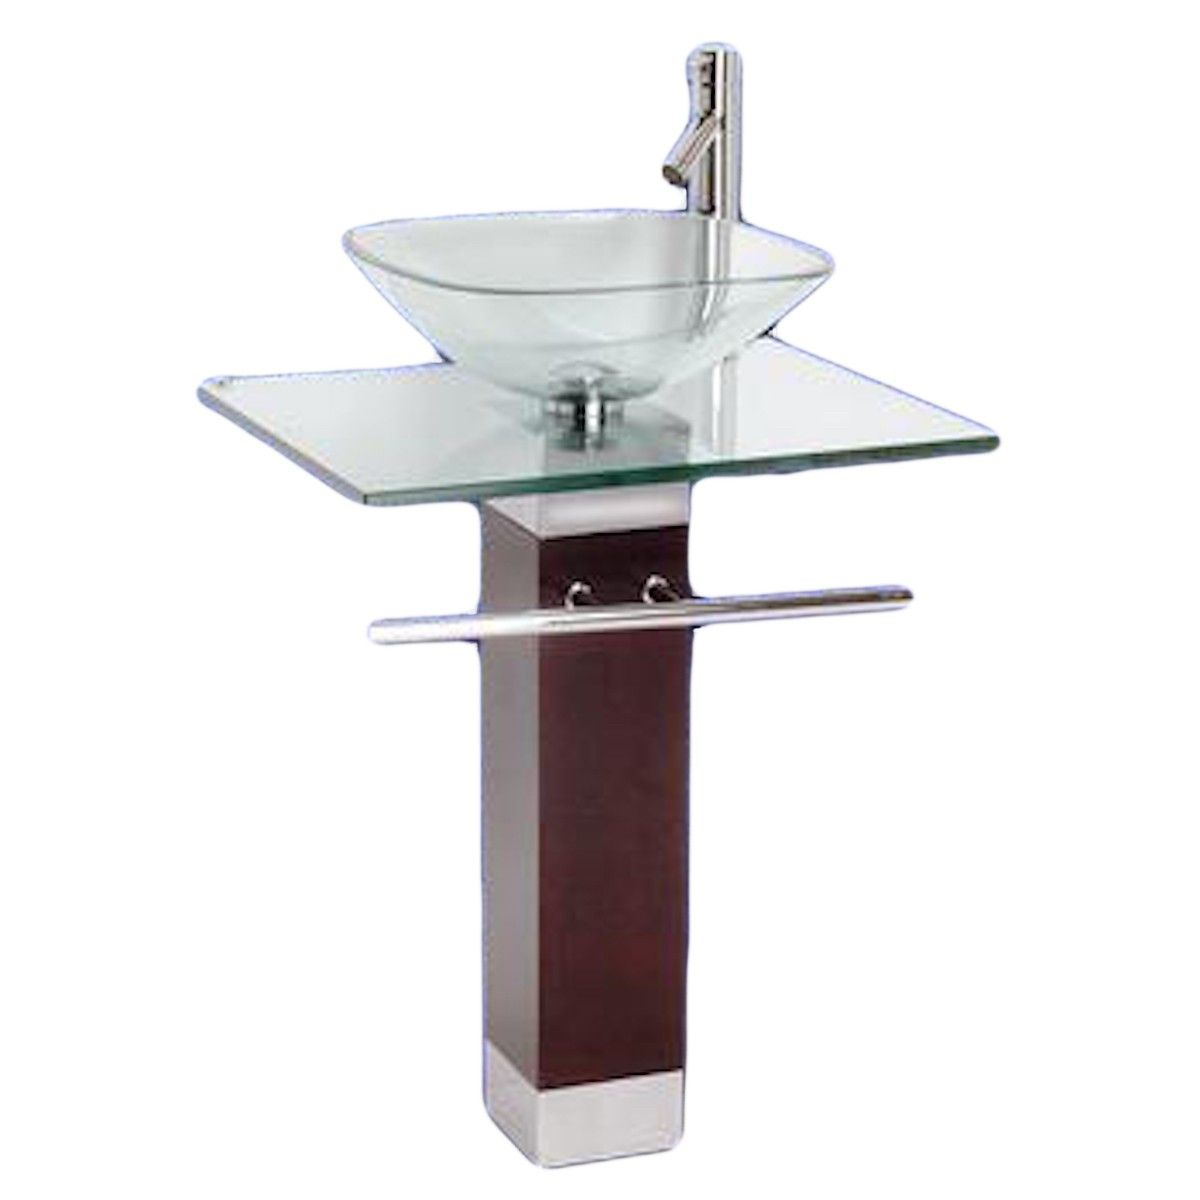 Item 10887 Tempered Glass Pedestal Sink And Faucet Combo With Images Glass Sink Pedestal Sink Modern Pedestal Sink